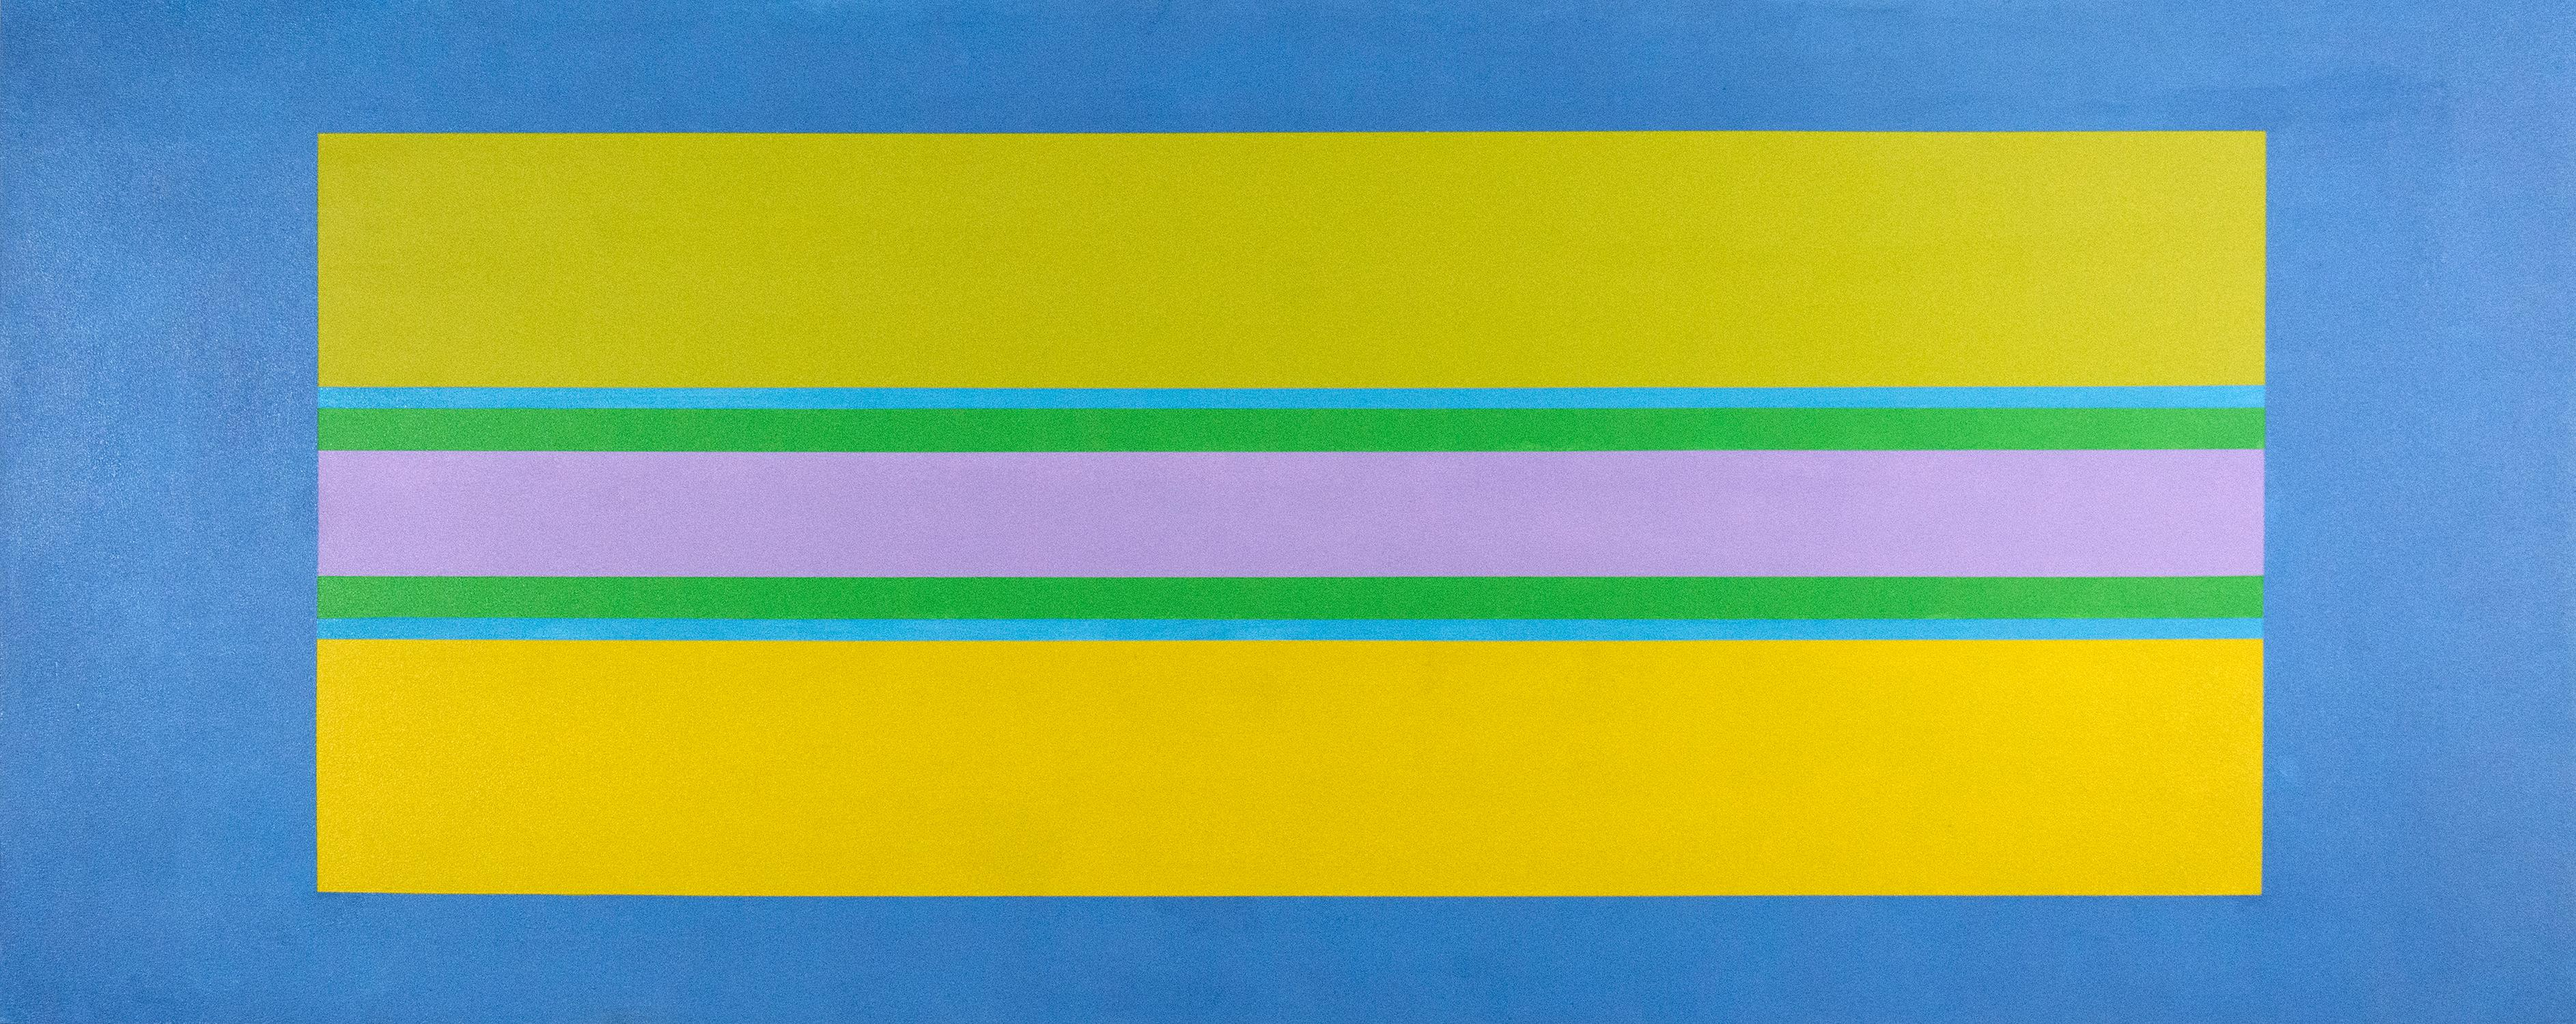 Oasis 7 - vivid, colourful geometric abstraction, modernist, acrylic on canvas